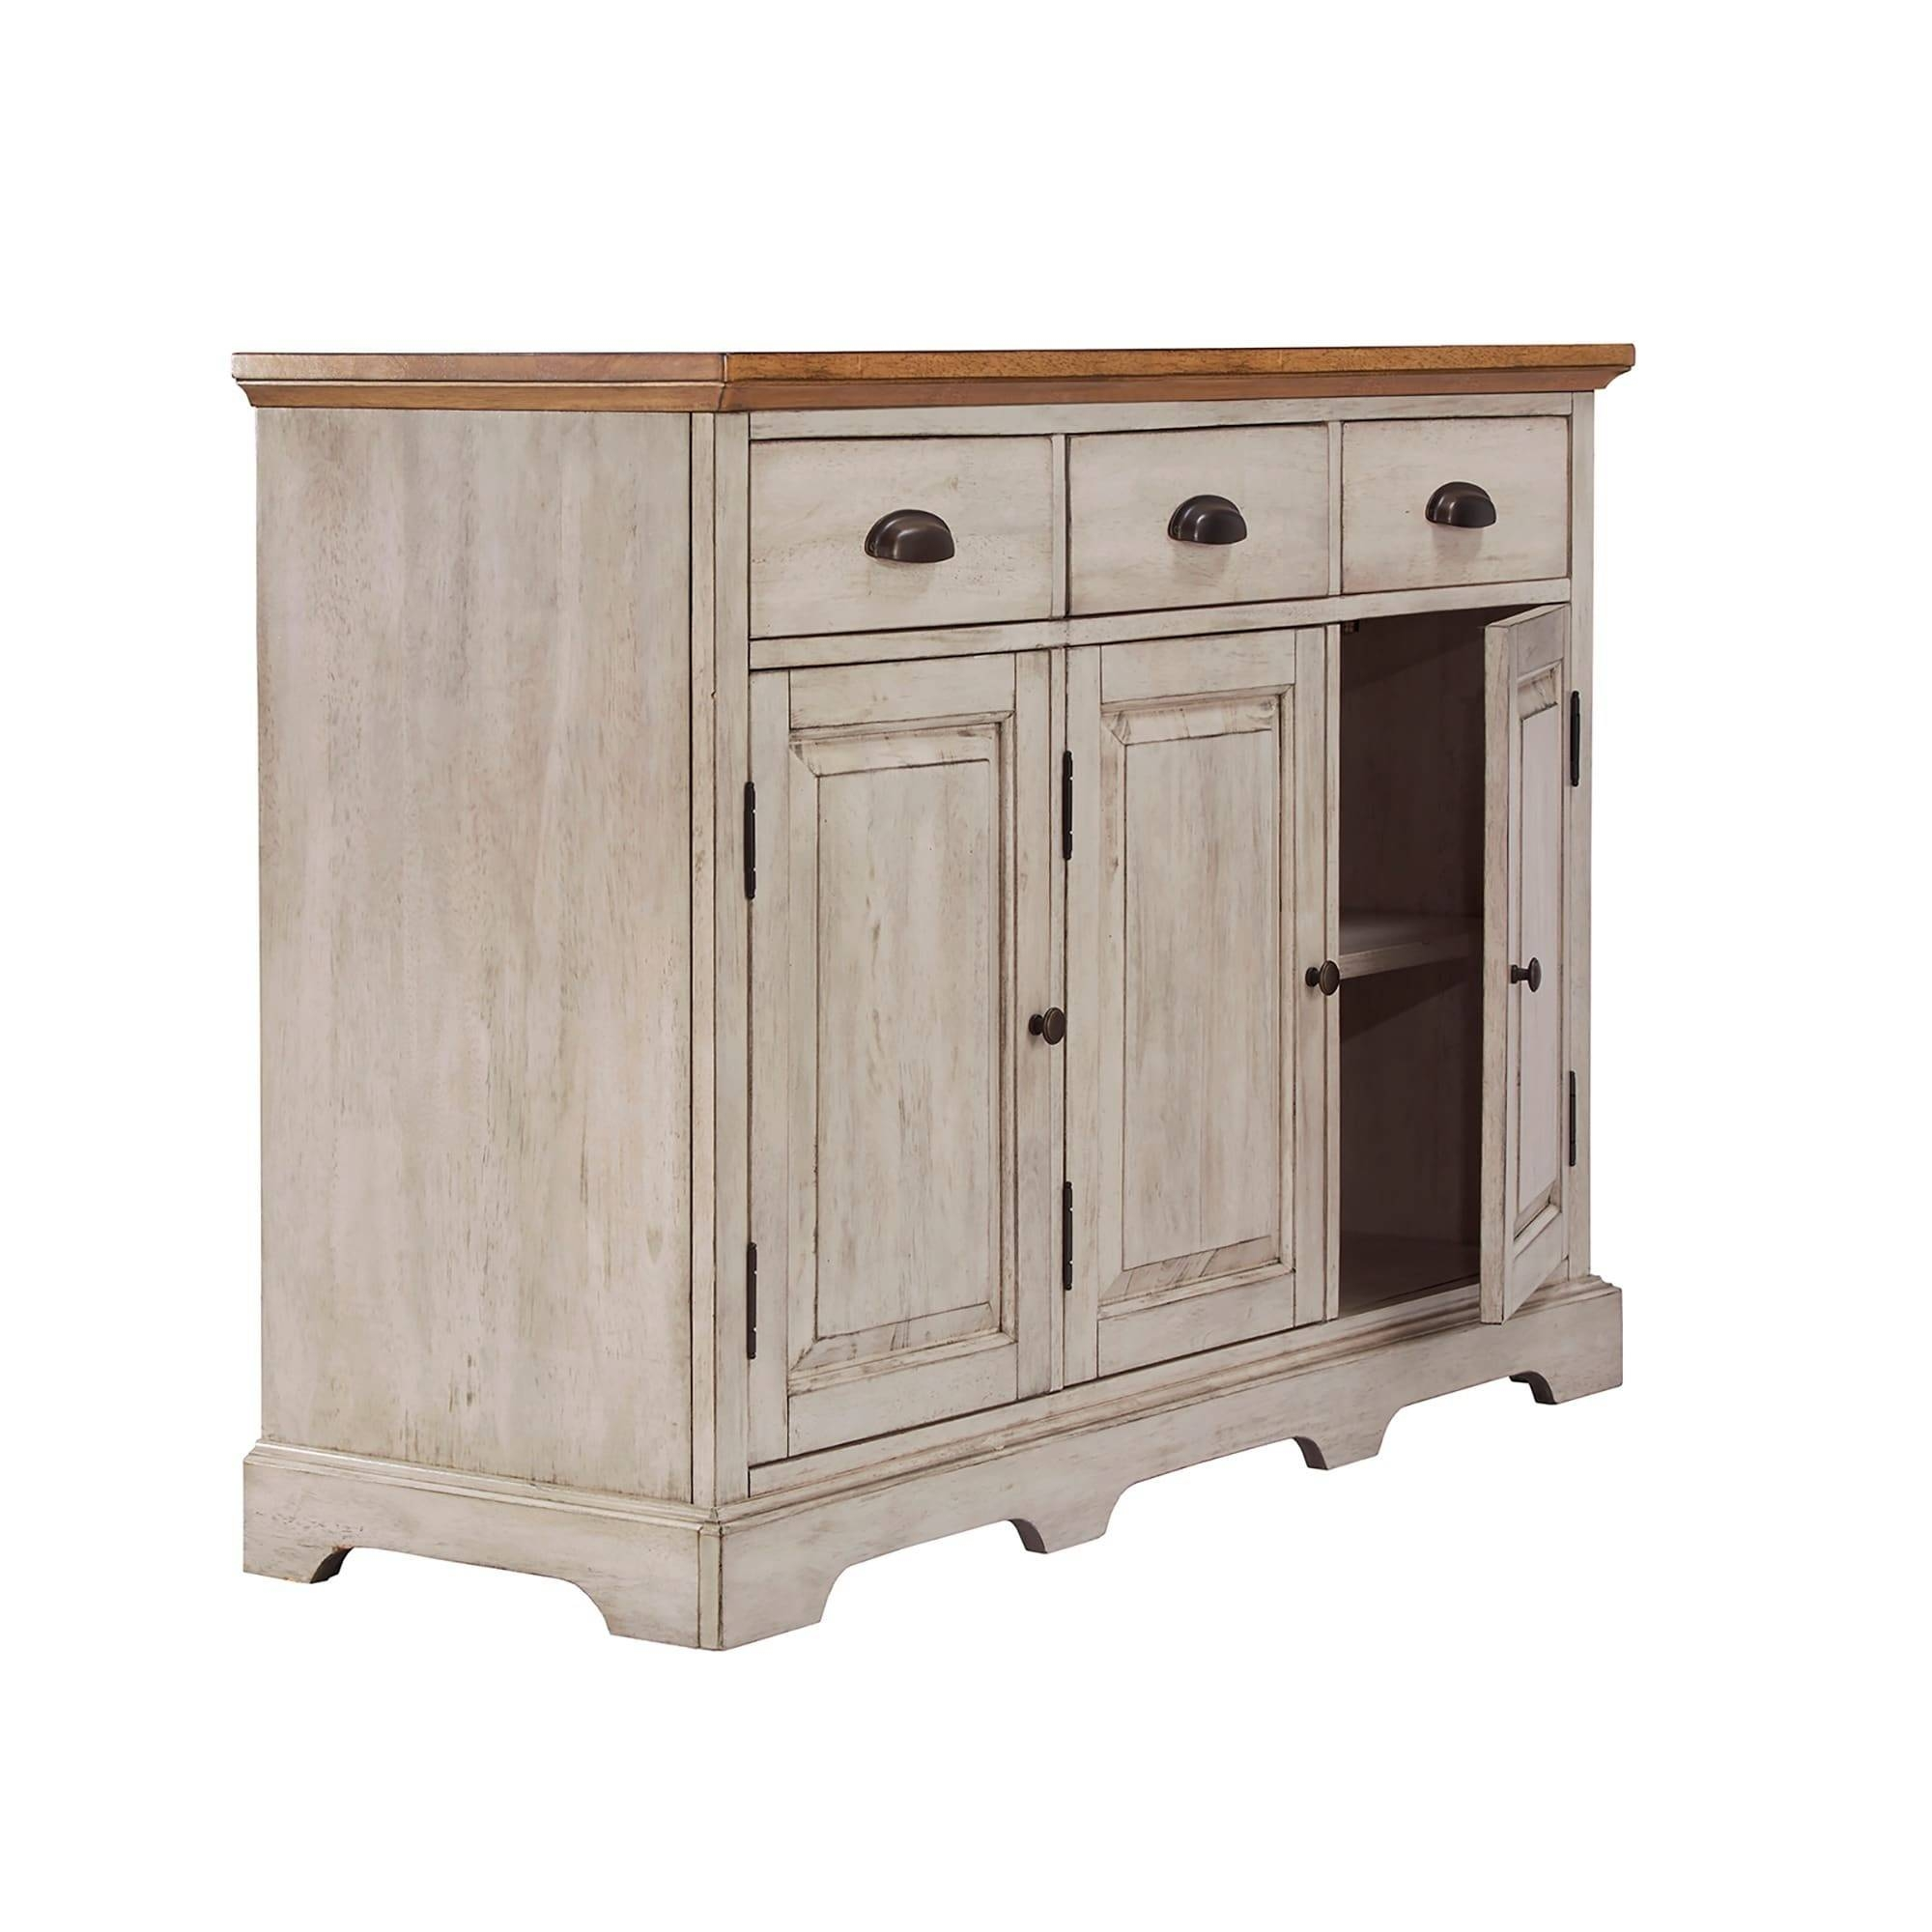 Eleanor Two-Tone Wood Cabinet Buffet Serverinspire Q Classic pertaining to 50 Inch Sideboards (Image 11 of 15)